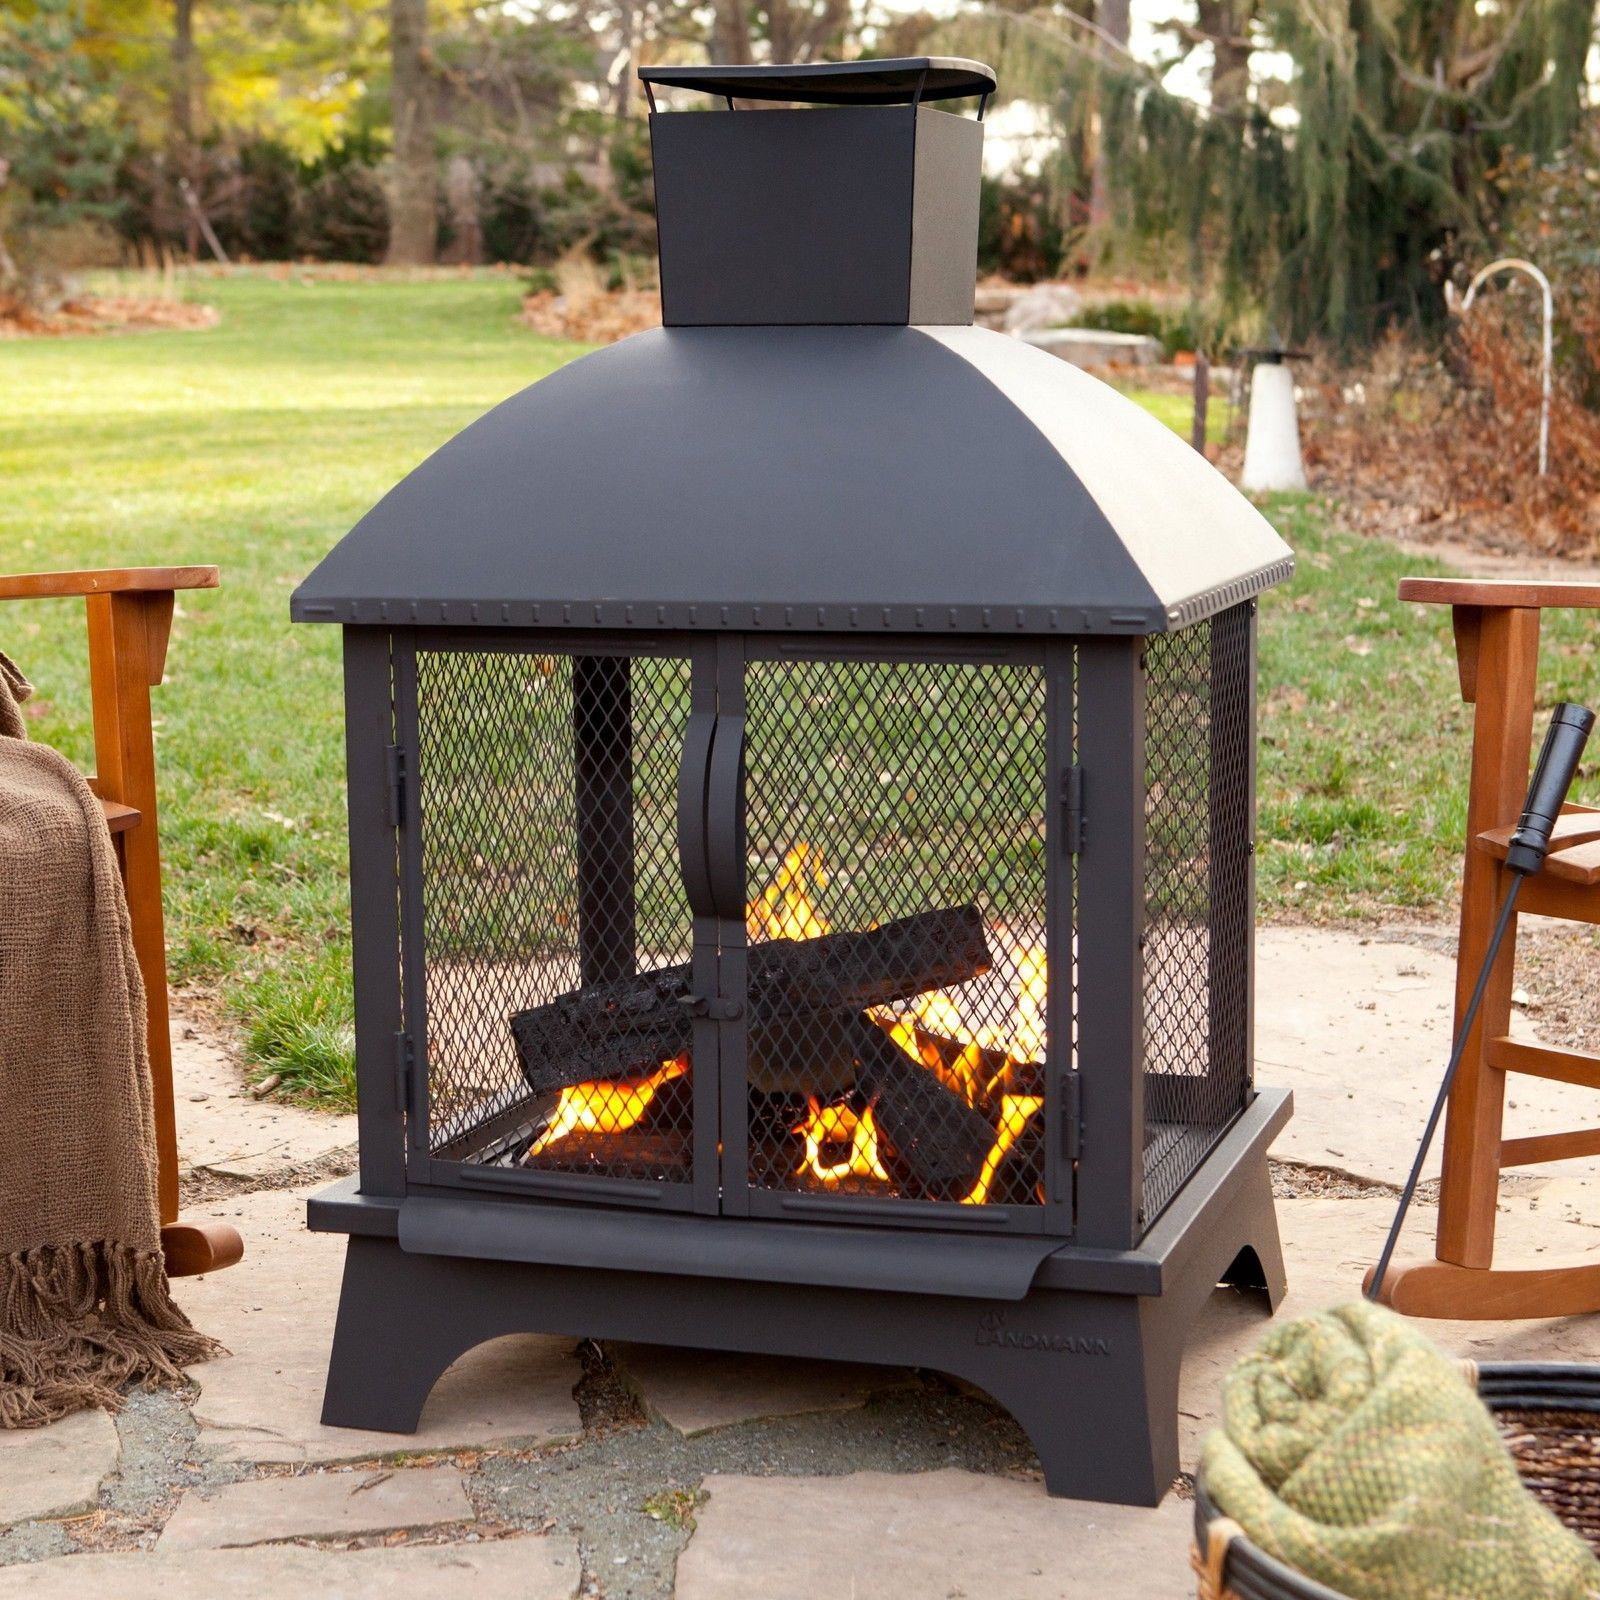 Fireplace Fire Pit  Outdoor Patio Fireplace Wood Burning Fire Pit Chiminea